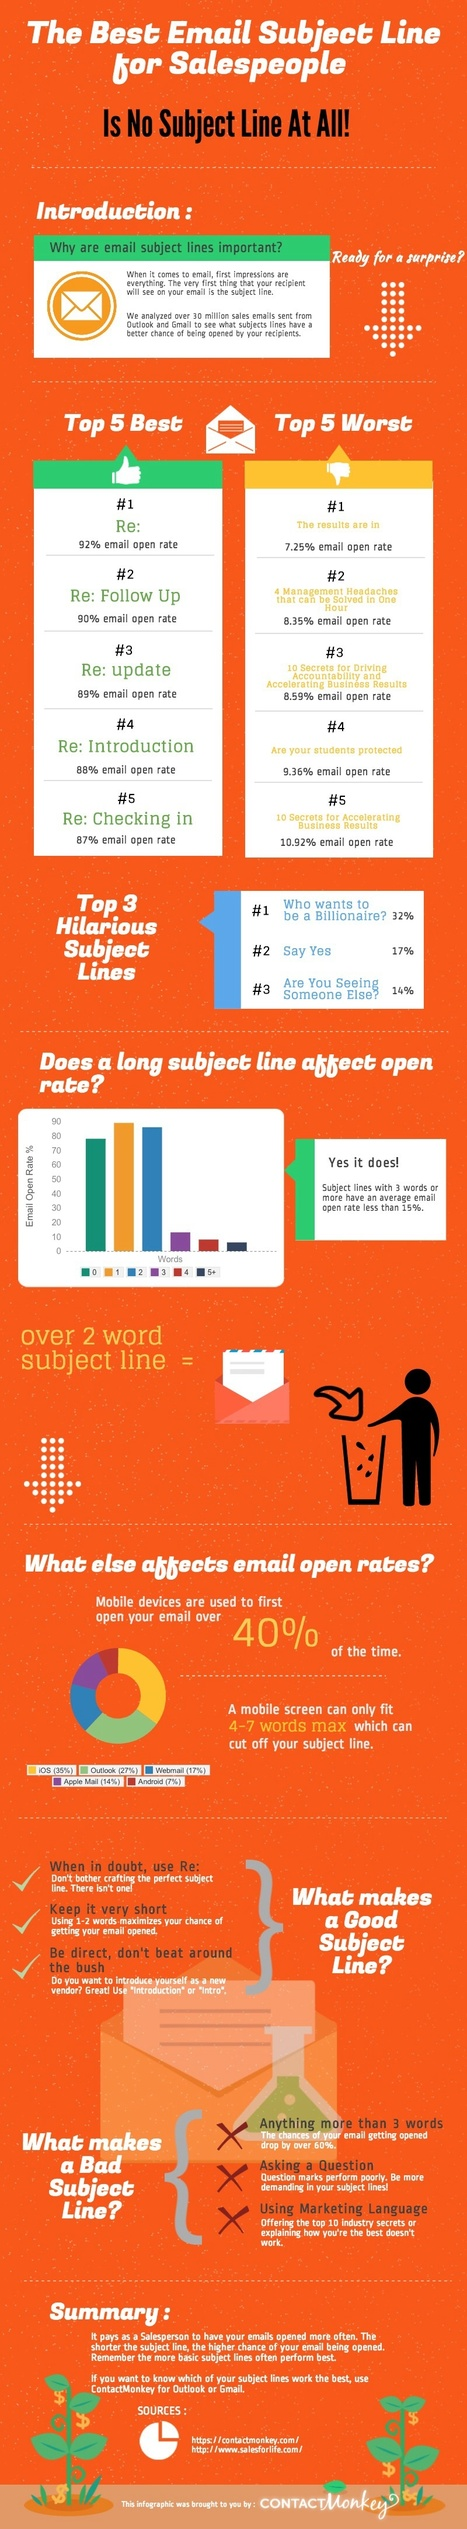 Subject Lines That Work For Sales Emails #infographic | MarketingHits | Scoop.it